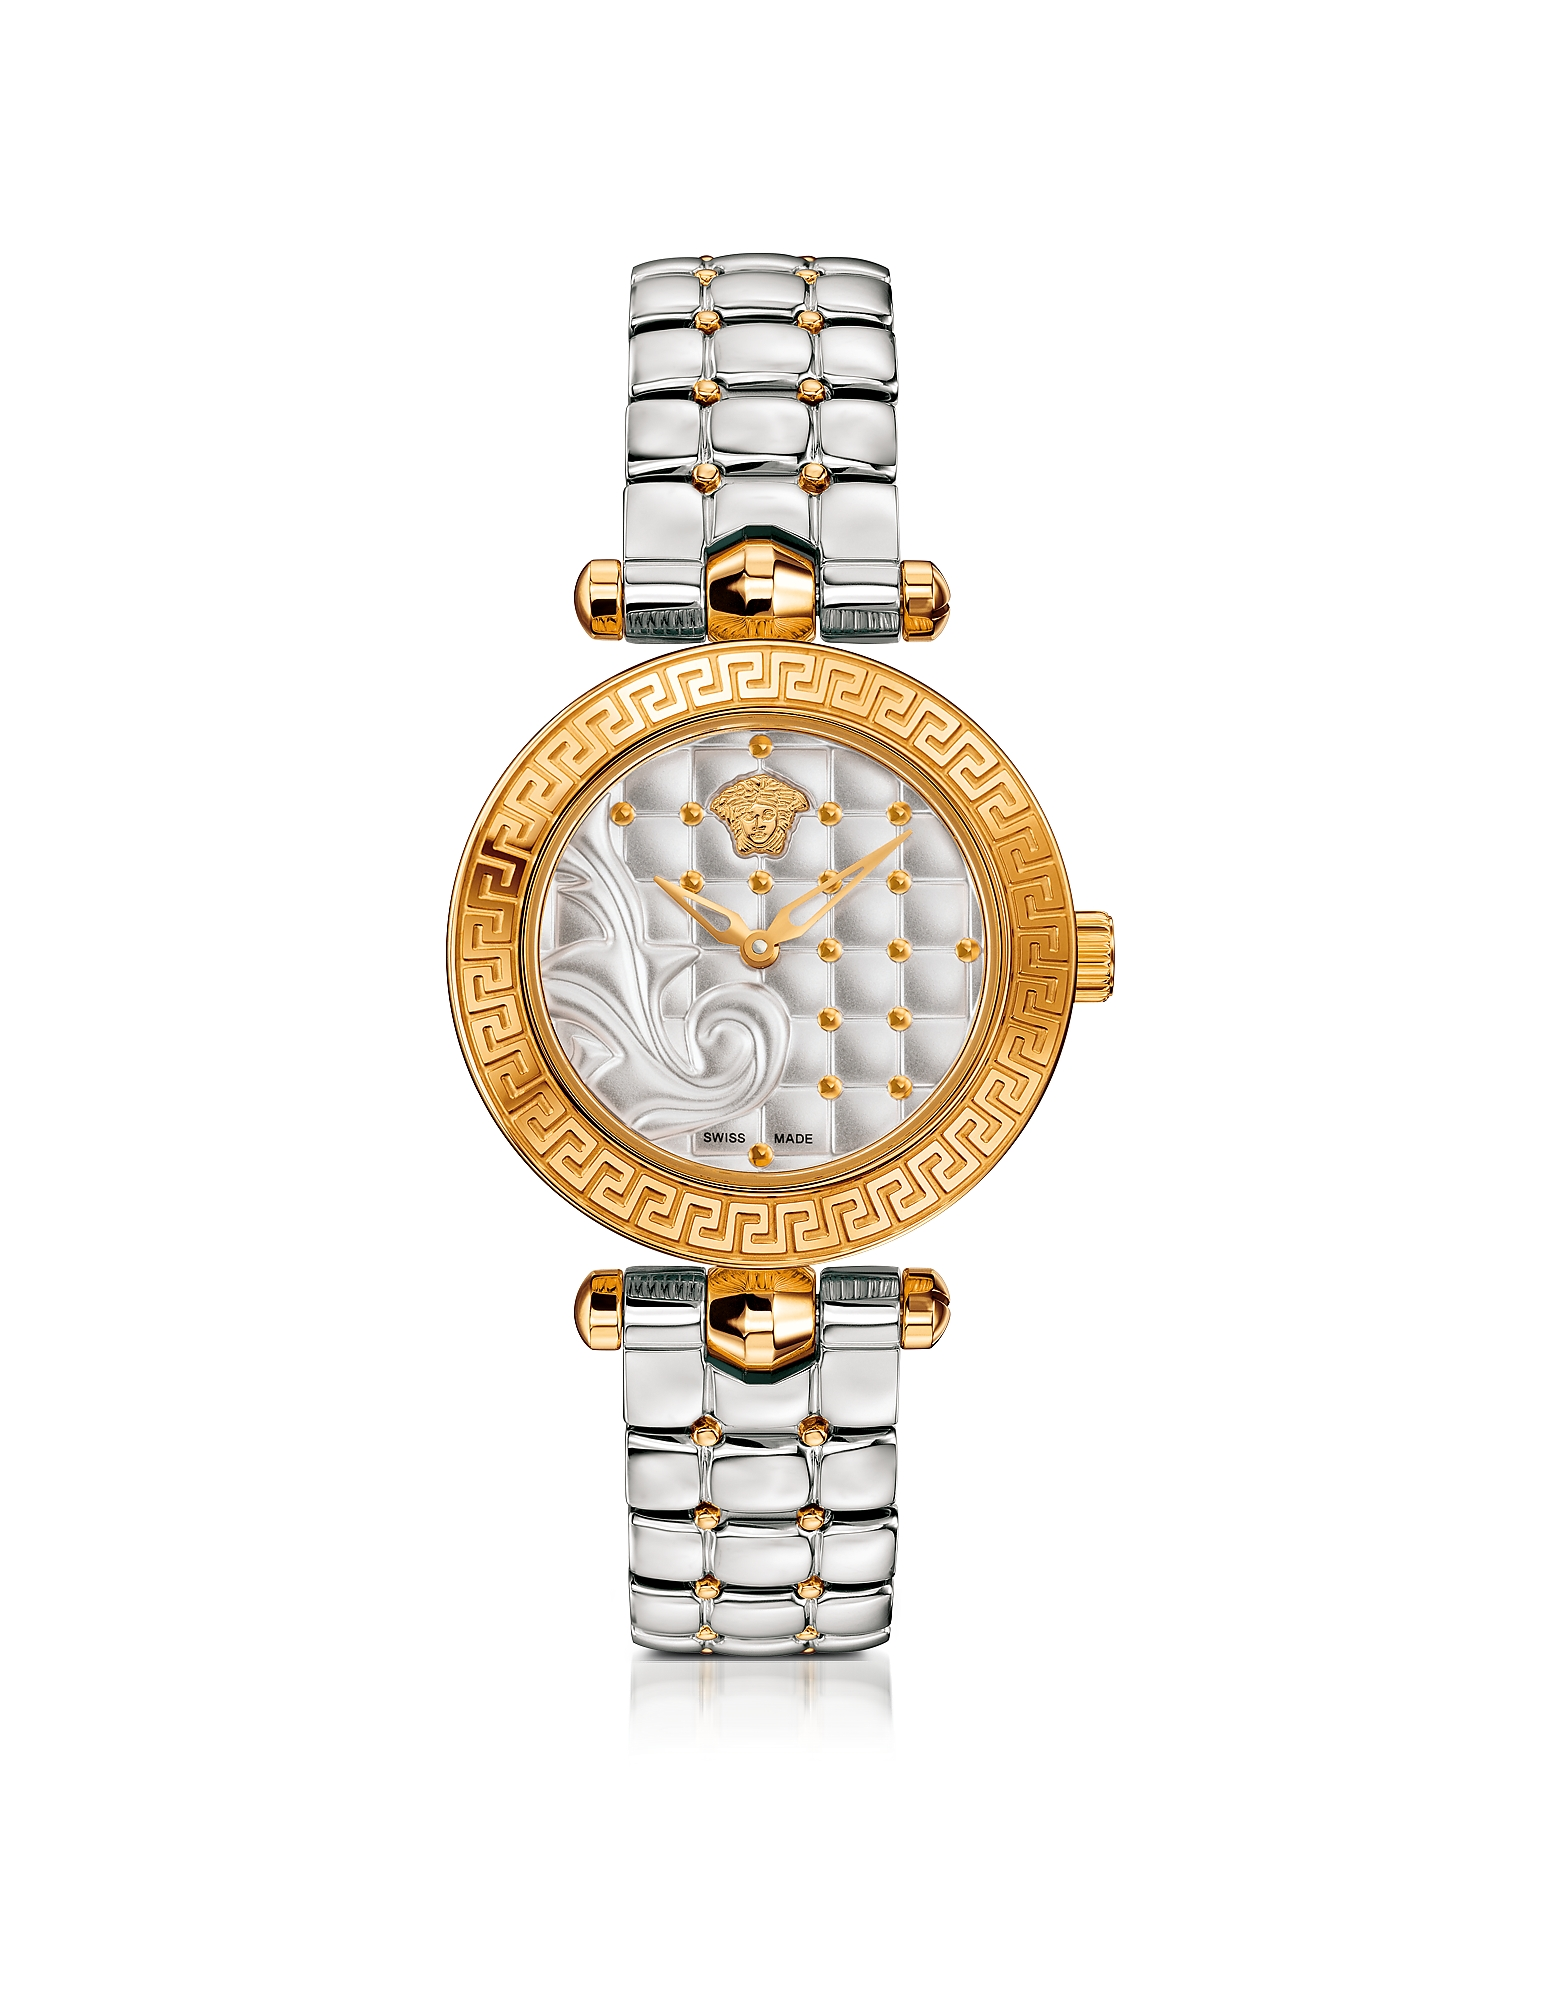 Versace Women's Watches, Micro Vanitas Stainless Steel and PVD Gold Plated Women's Watch w/Baroque P